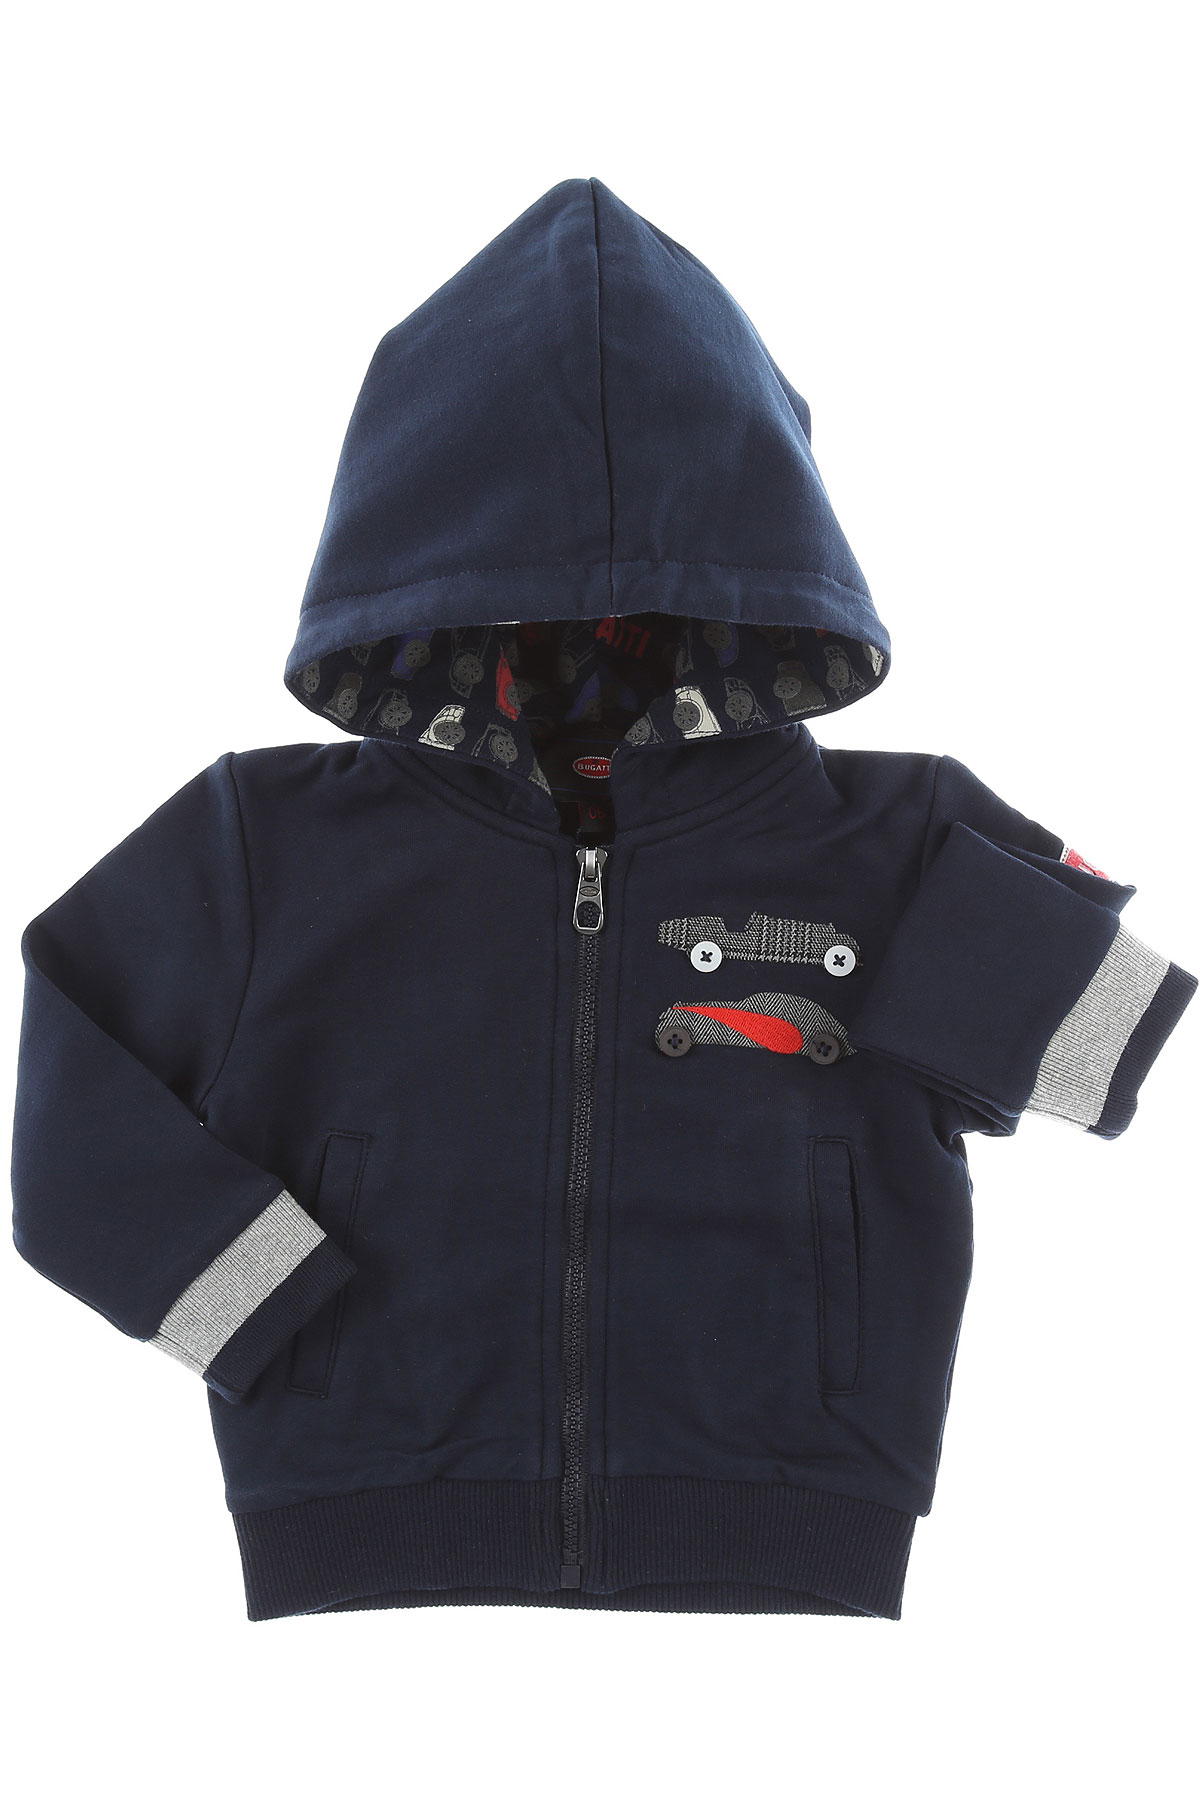 Image of Bugatti Baby Sweatshirts & Hoodies for Boys, Blue, Cotton, 2017, 12M 18M 6M 9M